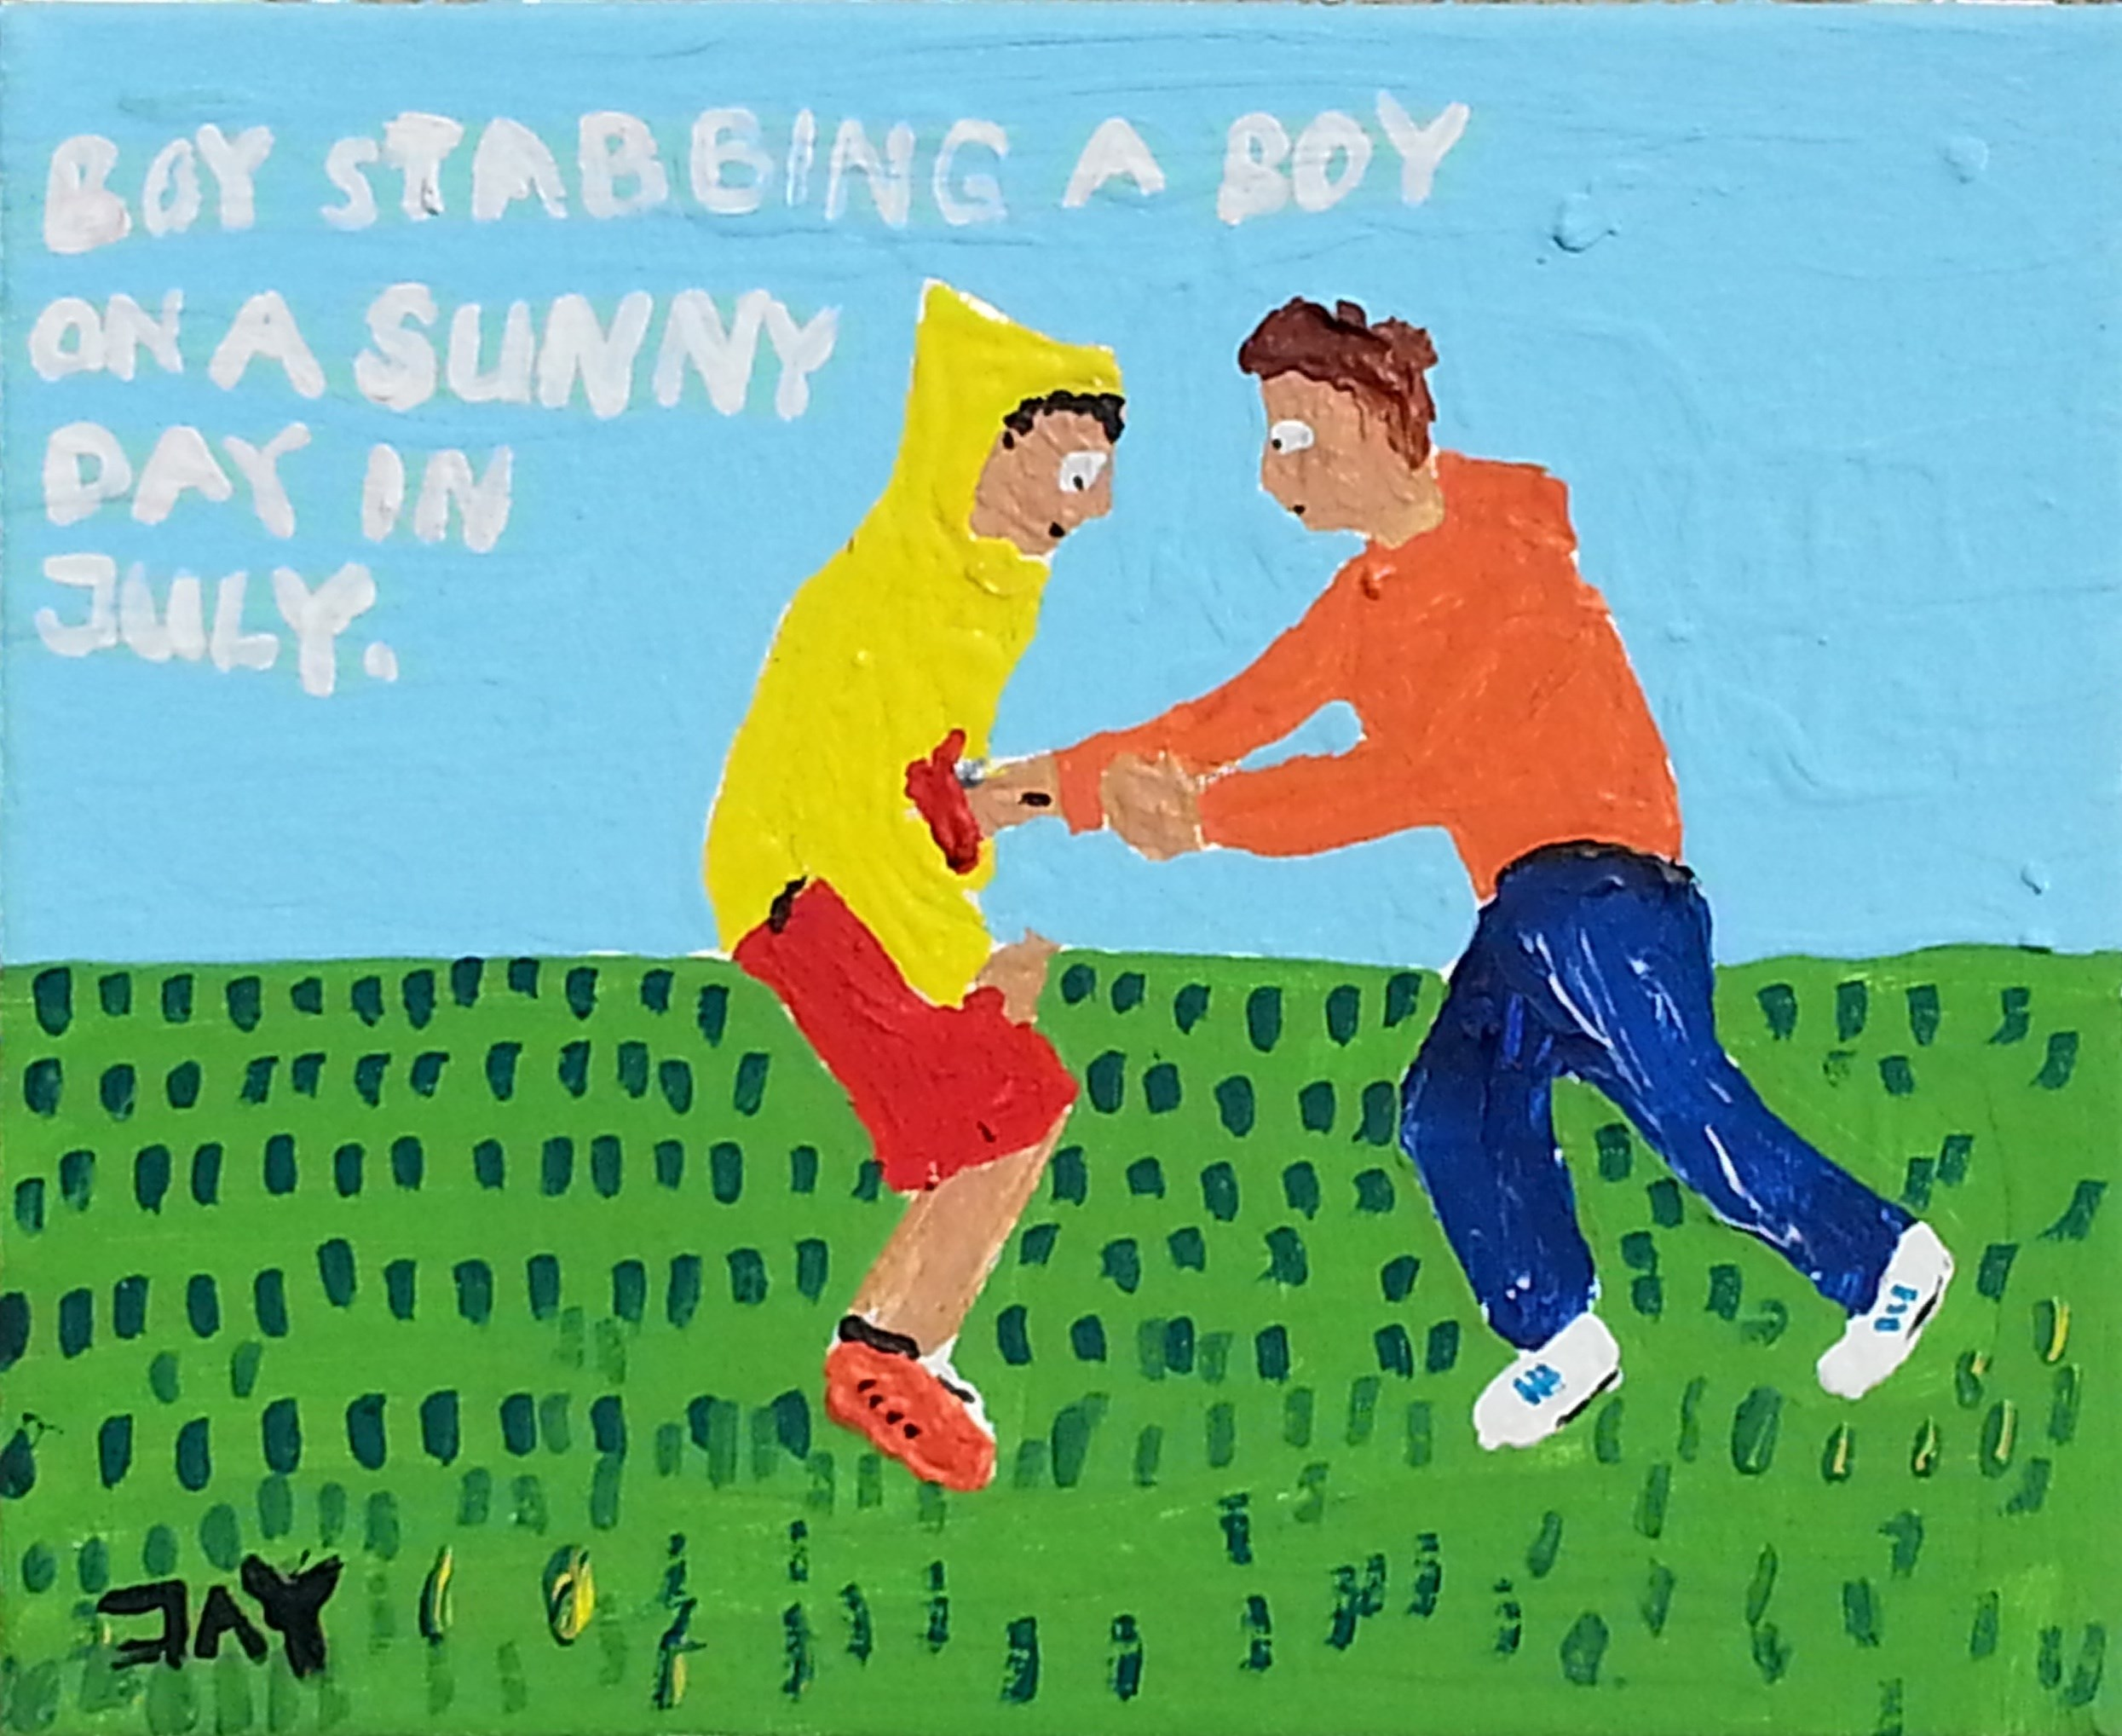 Boy stabbing a boy on a sunny day in July, original Avant-Garde Acrylic Painting by Jay Rechsteiner